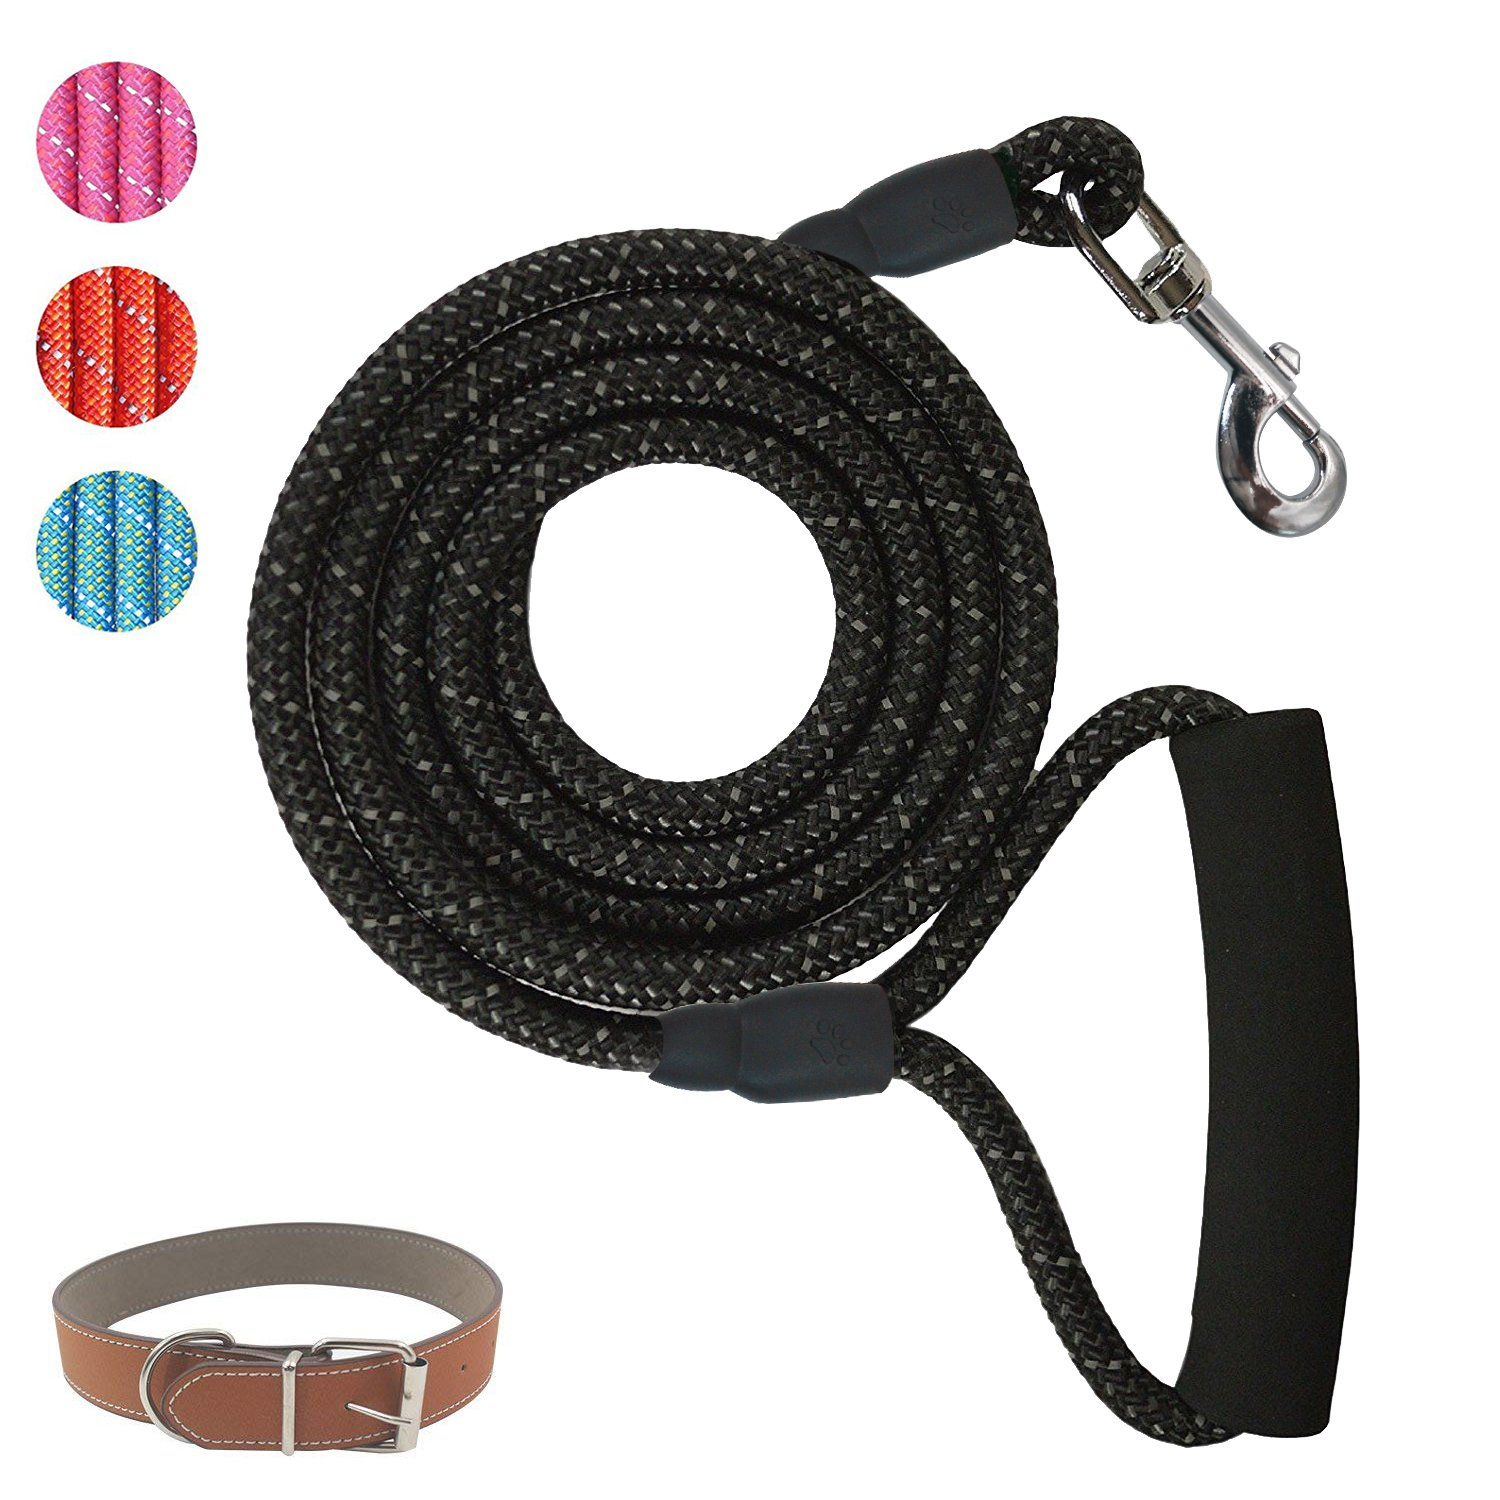 POWERIVER Dog Leash Lead, 6 Feet Strong Dog Lead with Dog Collar, 1.8 M Heavy Duty Dog Leash with Highly Reflective Threads,Perfect for Medium and Large Dogs- Black